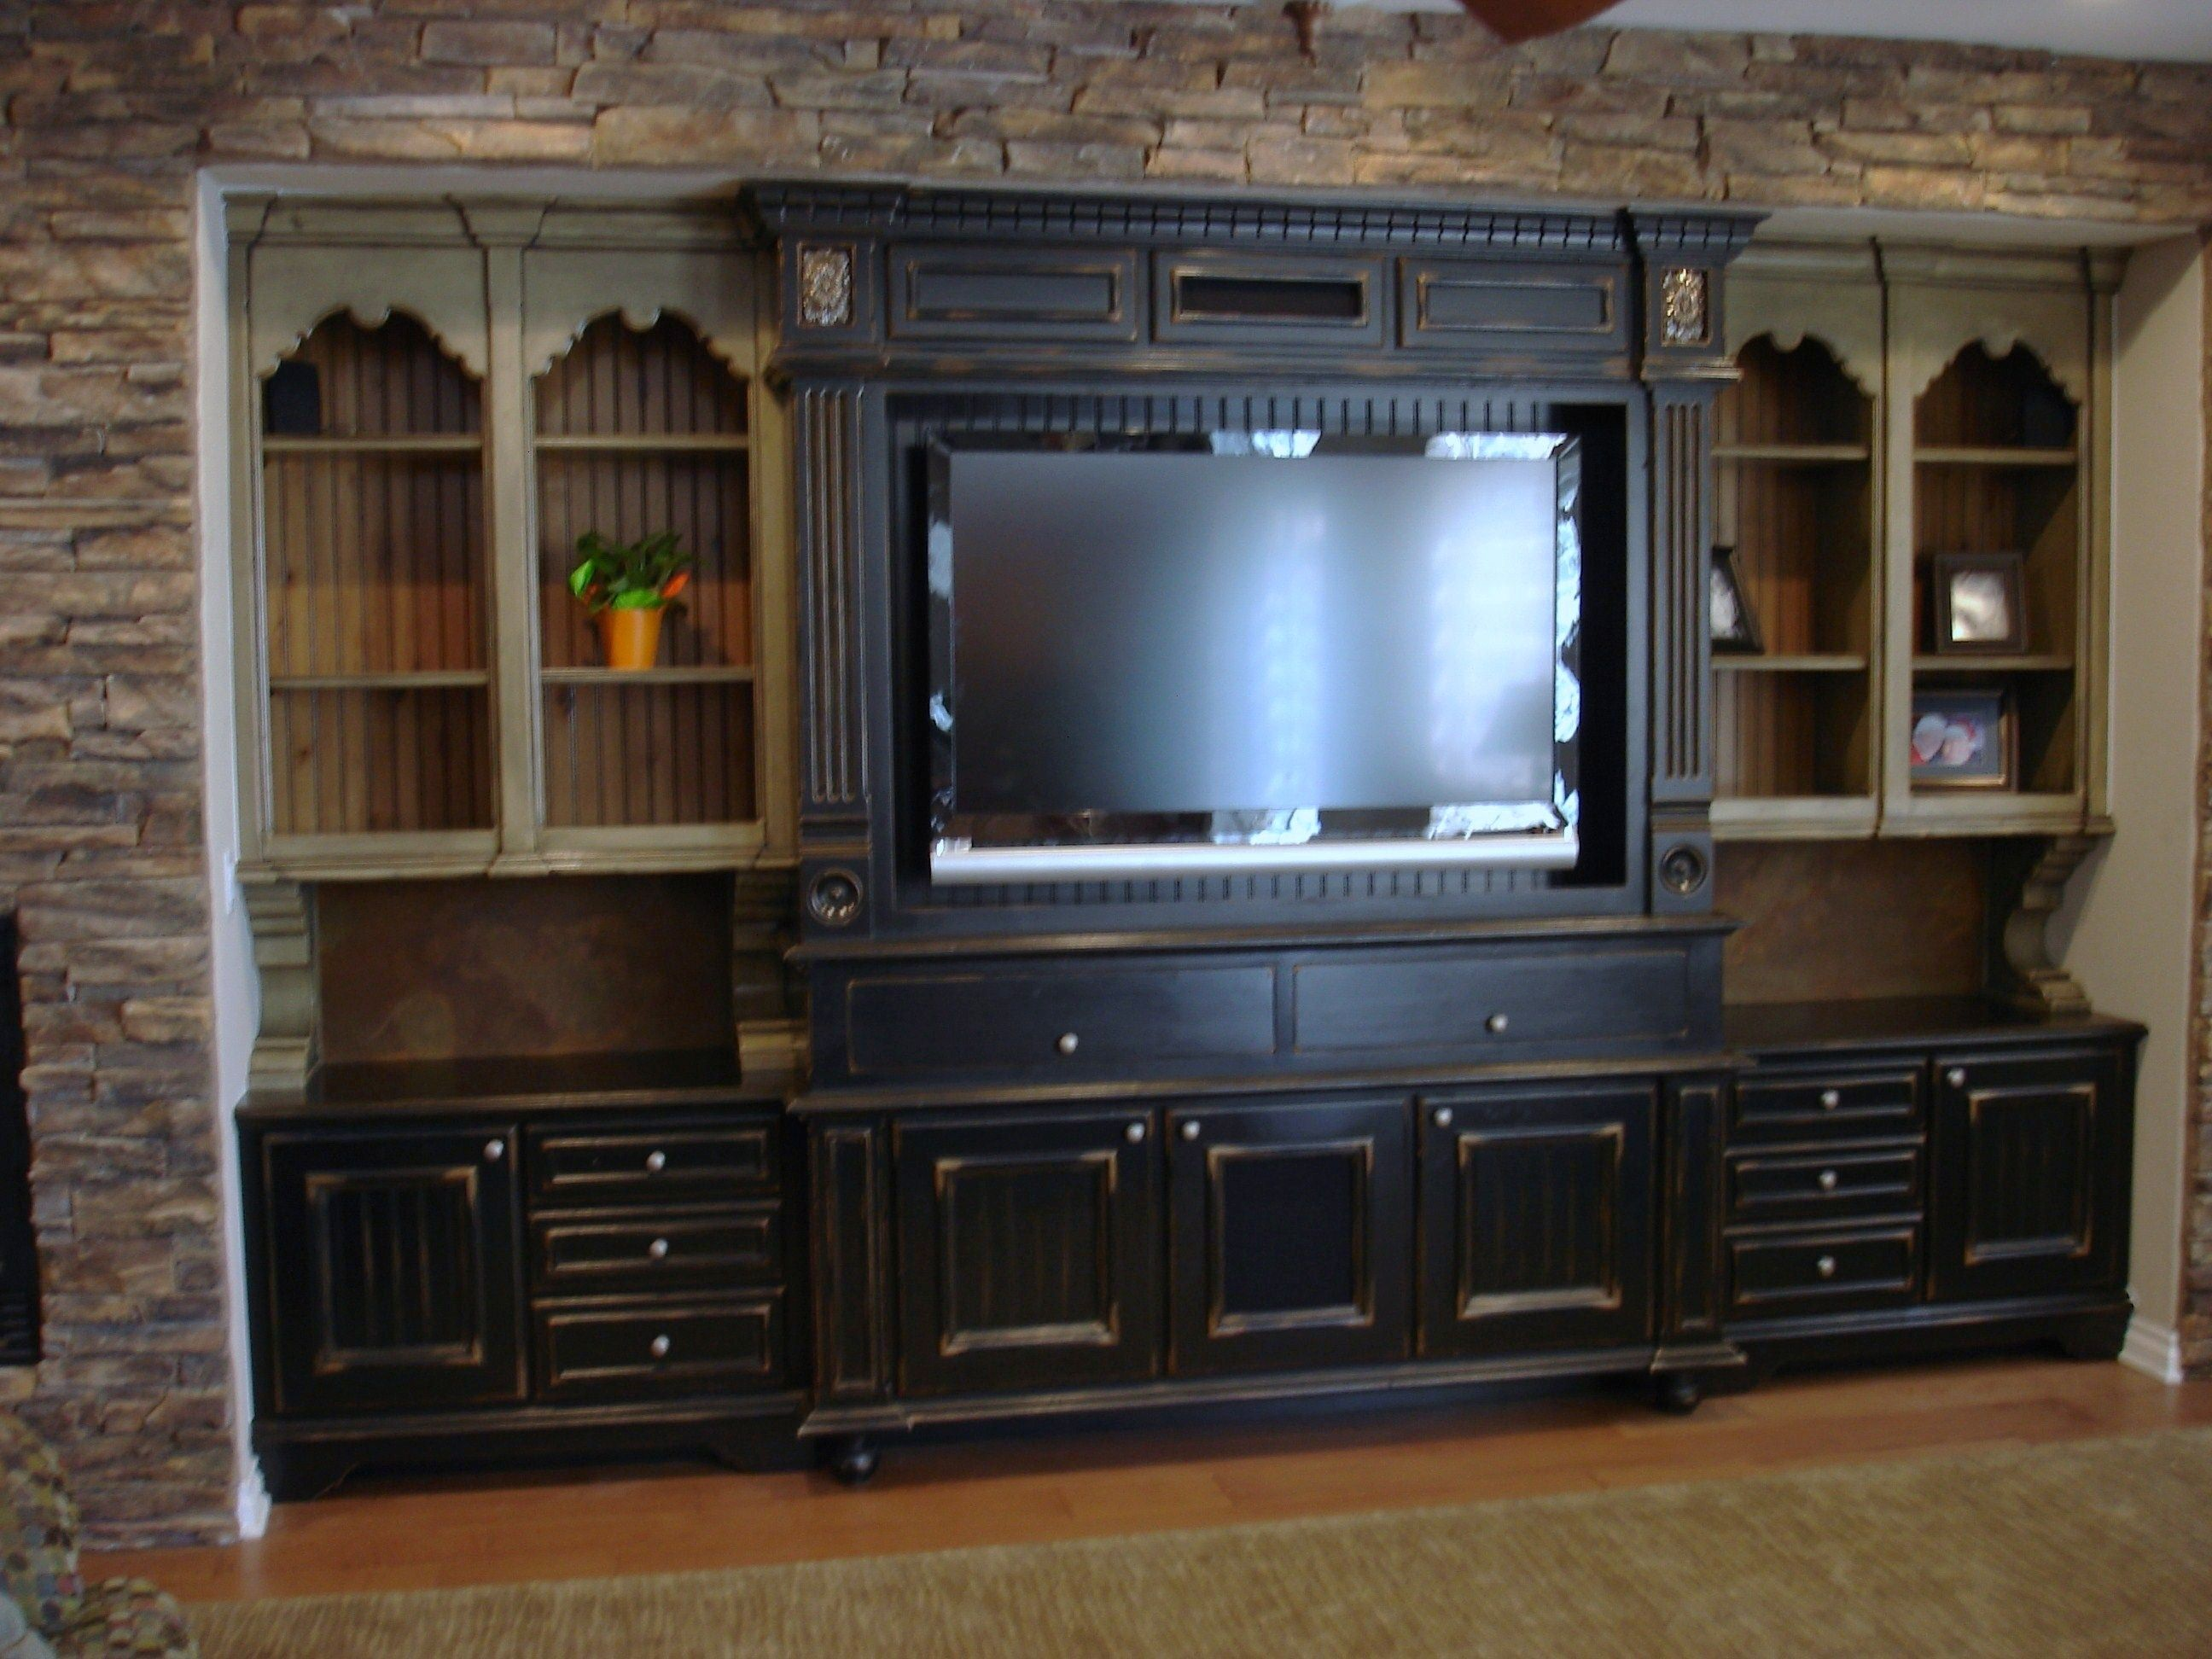 Built In Entertainment Center Design Ideas custom built entertainment center wwwmattgausdesignscom Custom Built Entertainment Center Wwwmattgausdesignscom